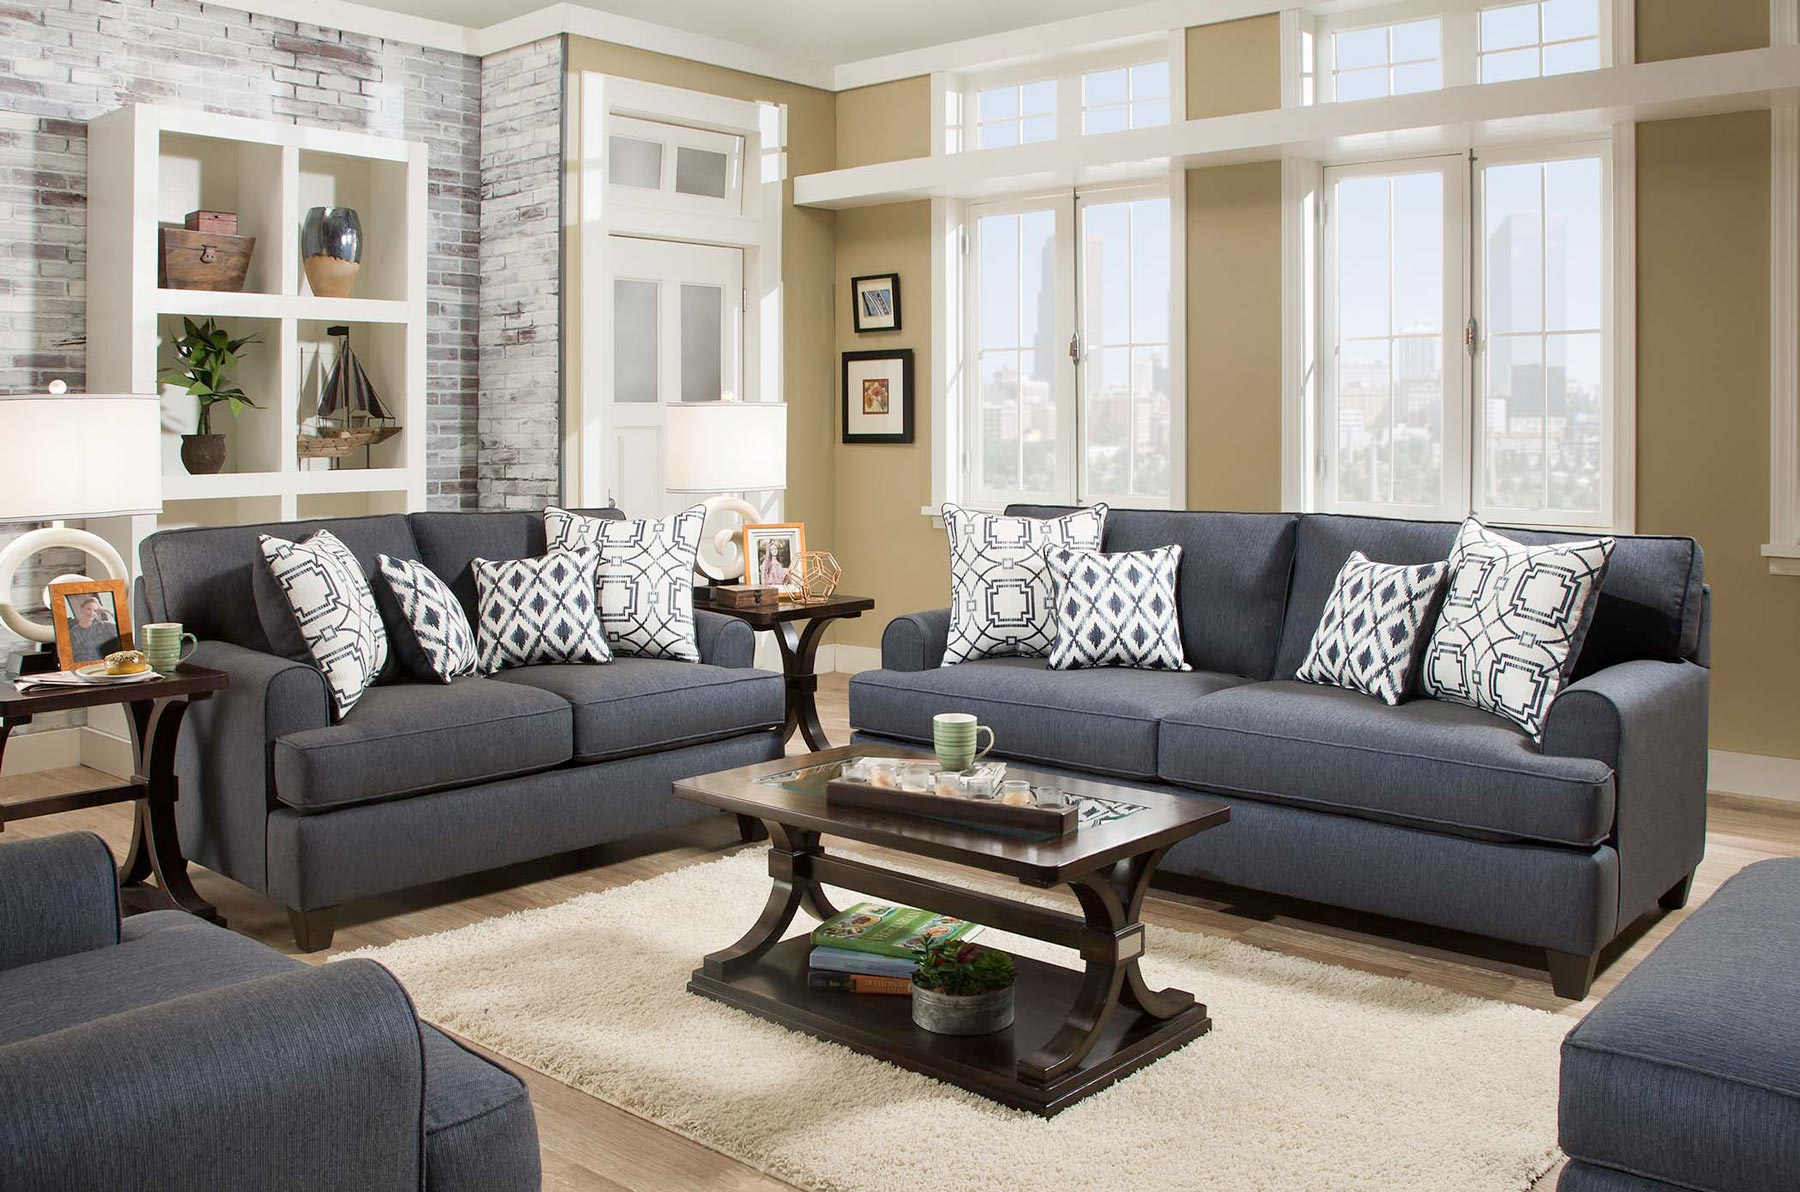 Tremendous Navy Blue Sofa And Loveseat Reclining Navy Blue Leather Theyellowbook Wood Chair Design Ideas Theyellowbookinfo